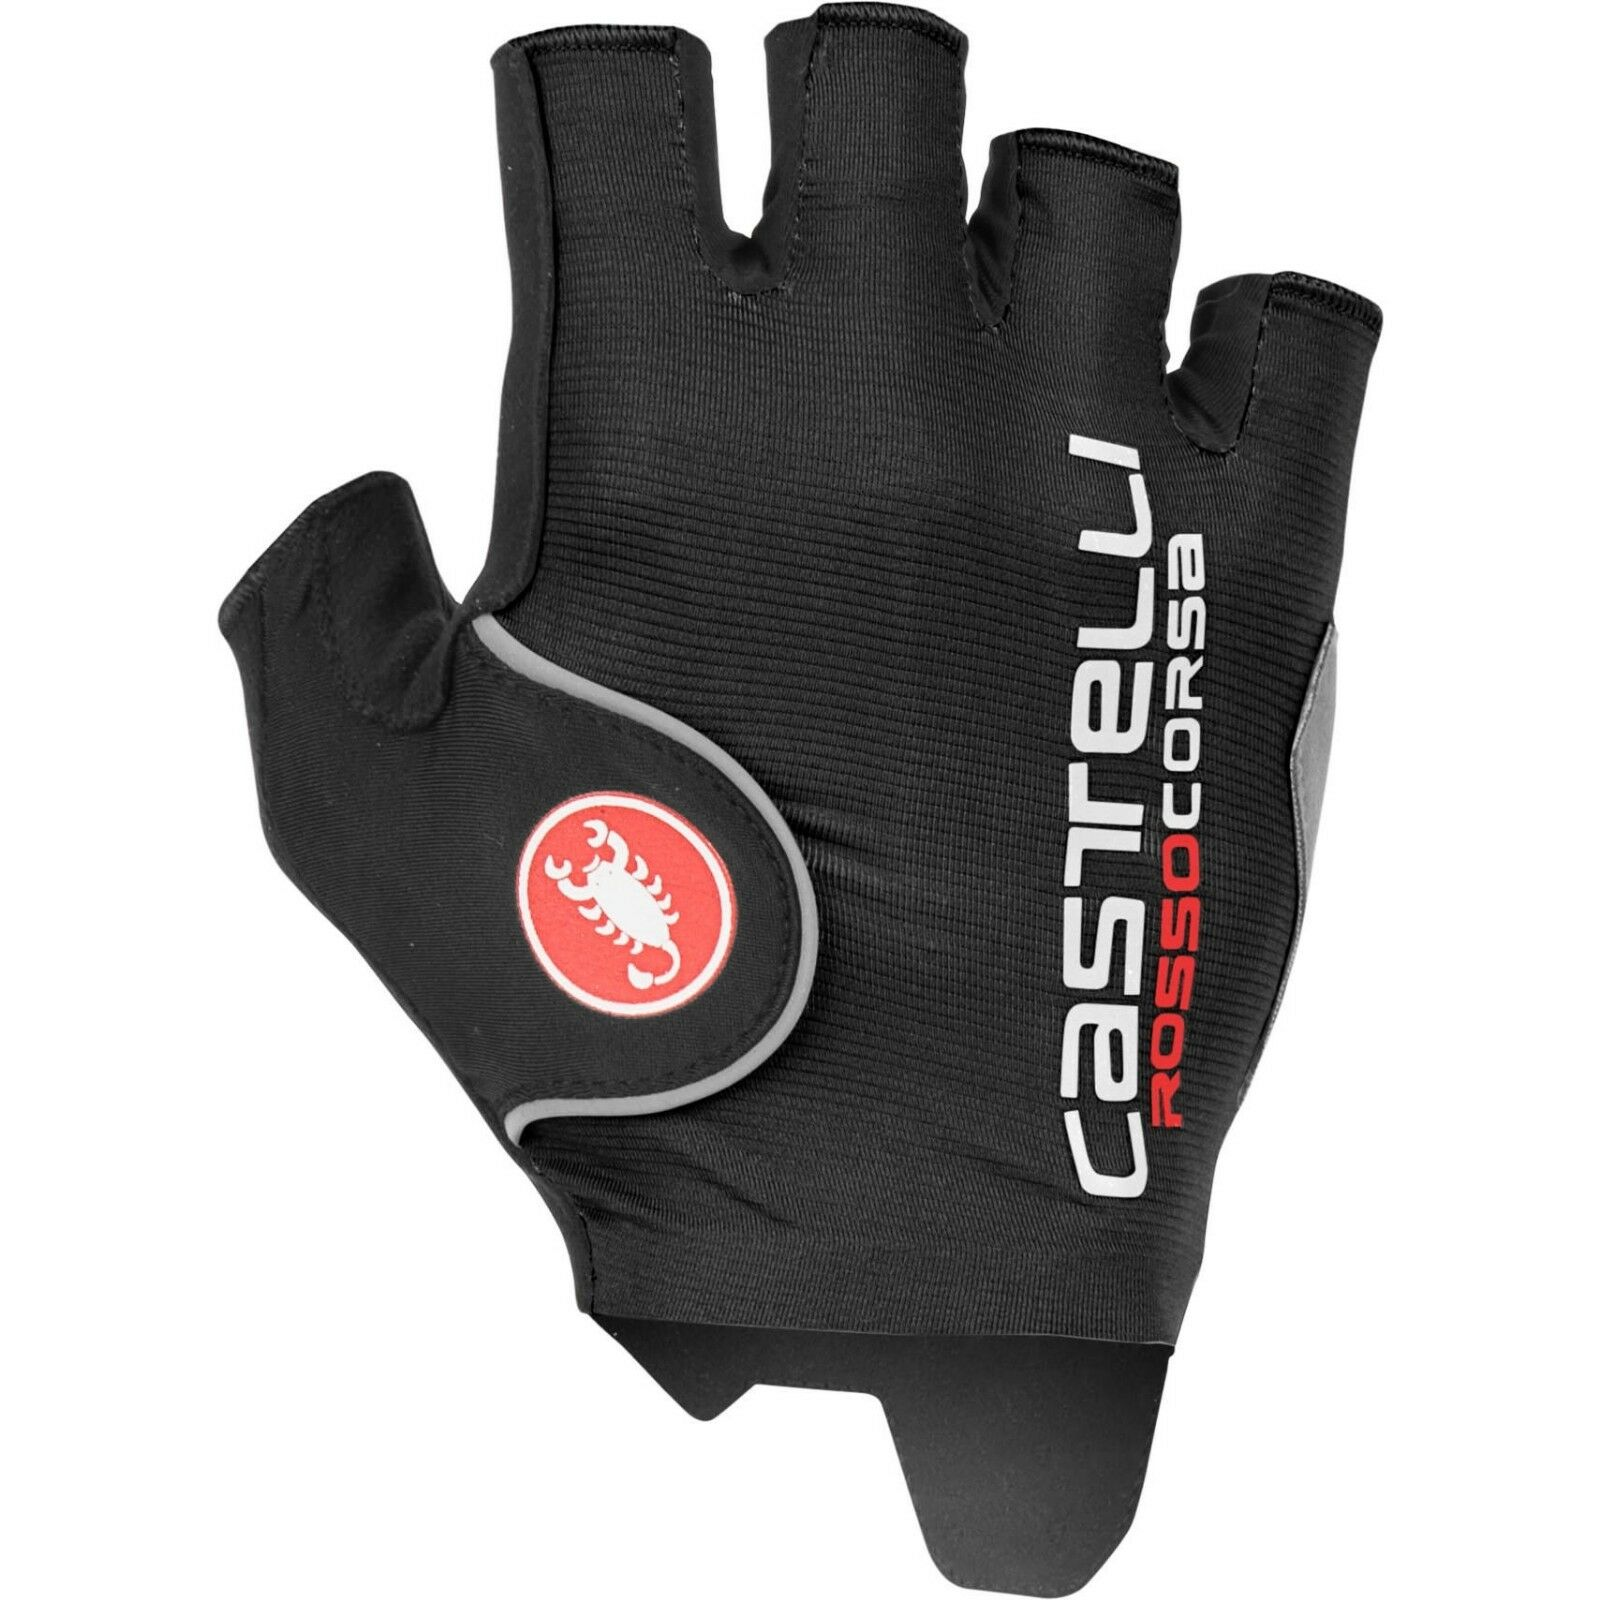 Castelli red  Corsa Pro Cycling G s - 2020  best sale